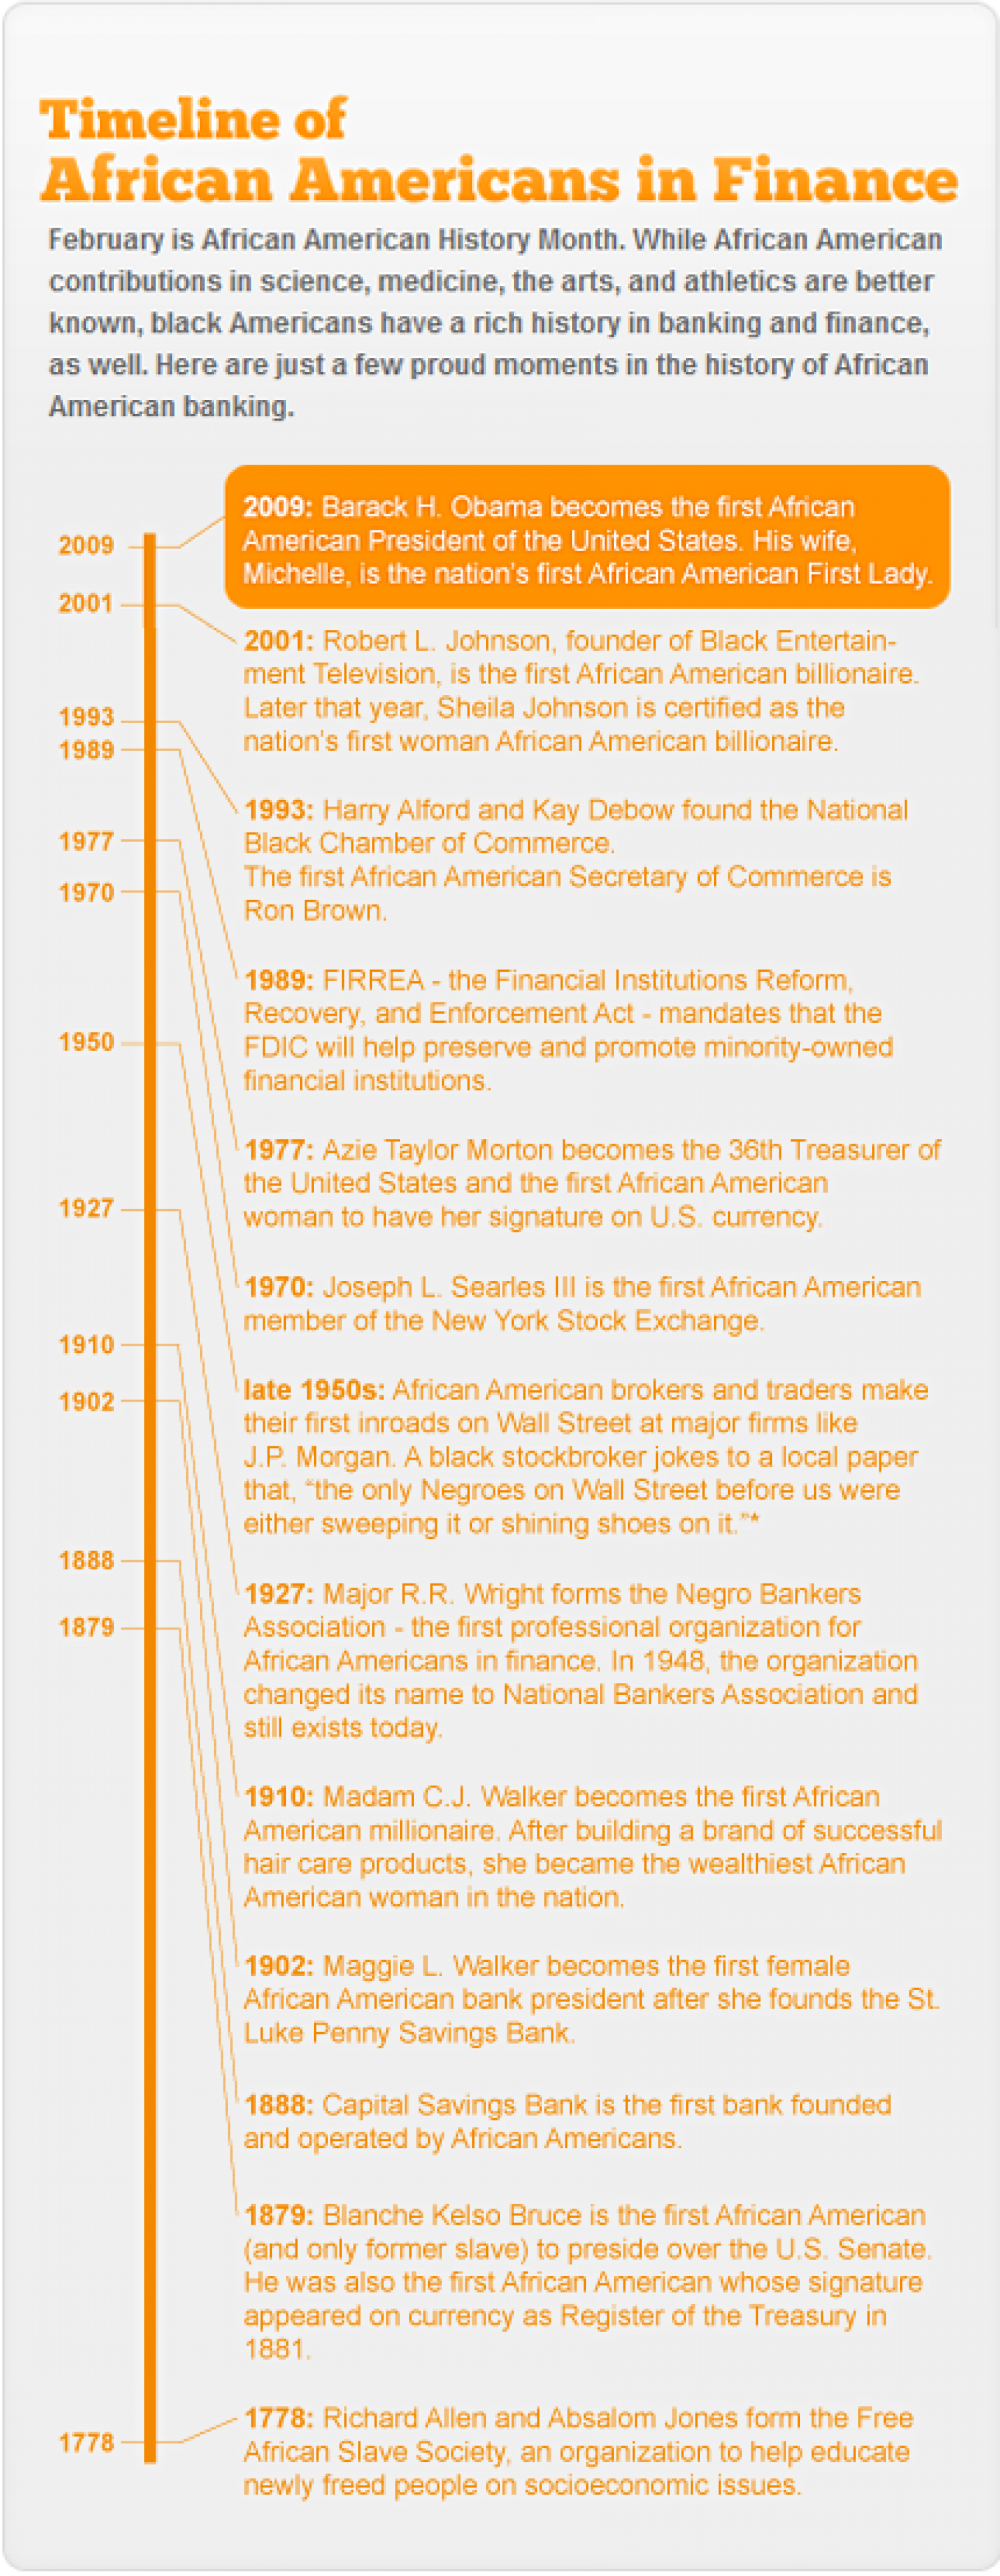 Timeline of African Americans in Finance Visual.ly in